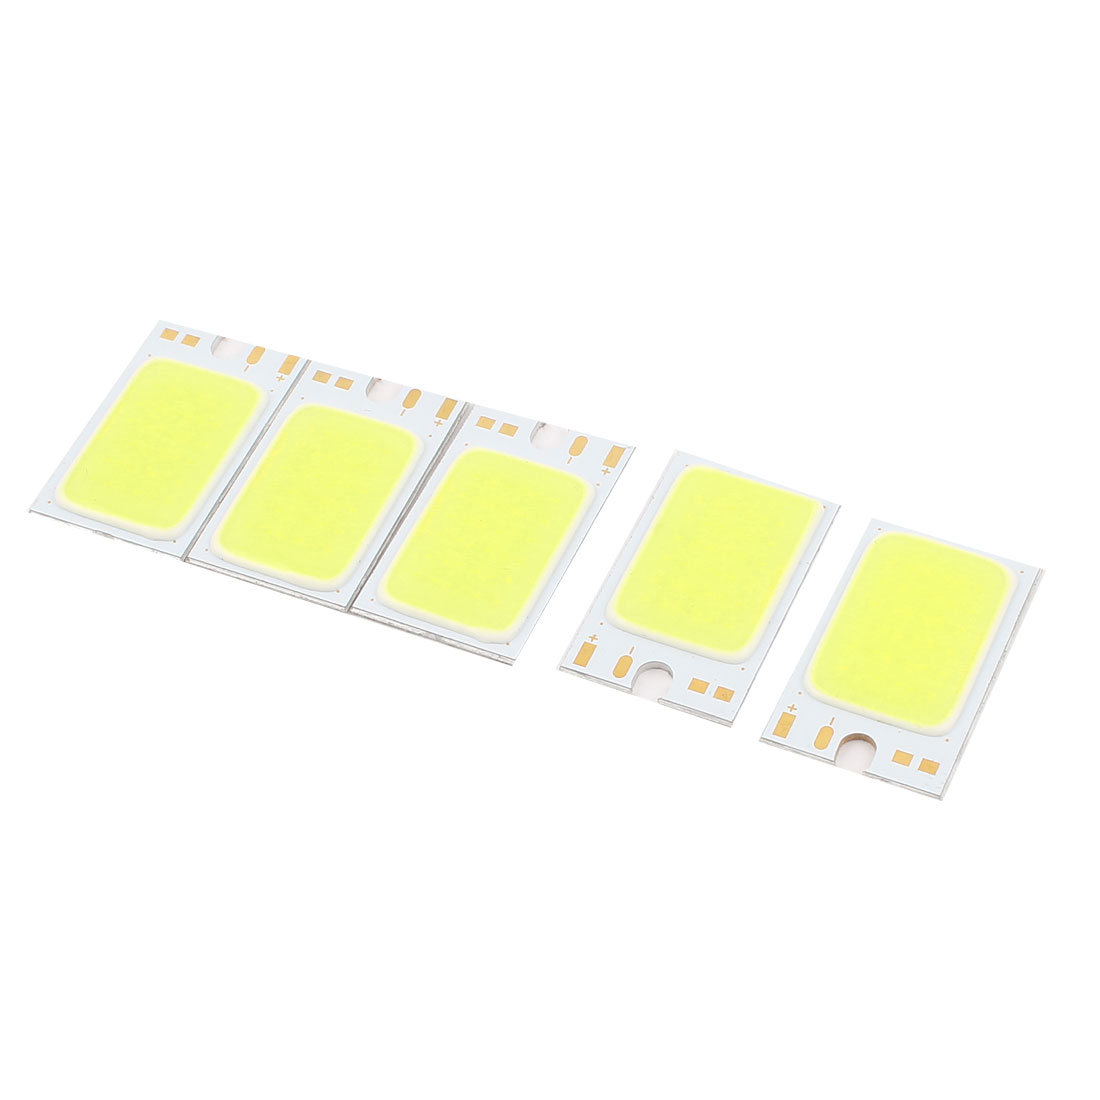 1.5W DC9-11V 150mA 80-90LM/W White LED Light COB Lamp Bead Chip 5 Pcs